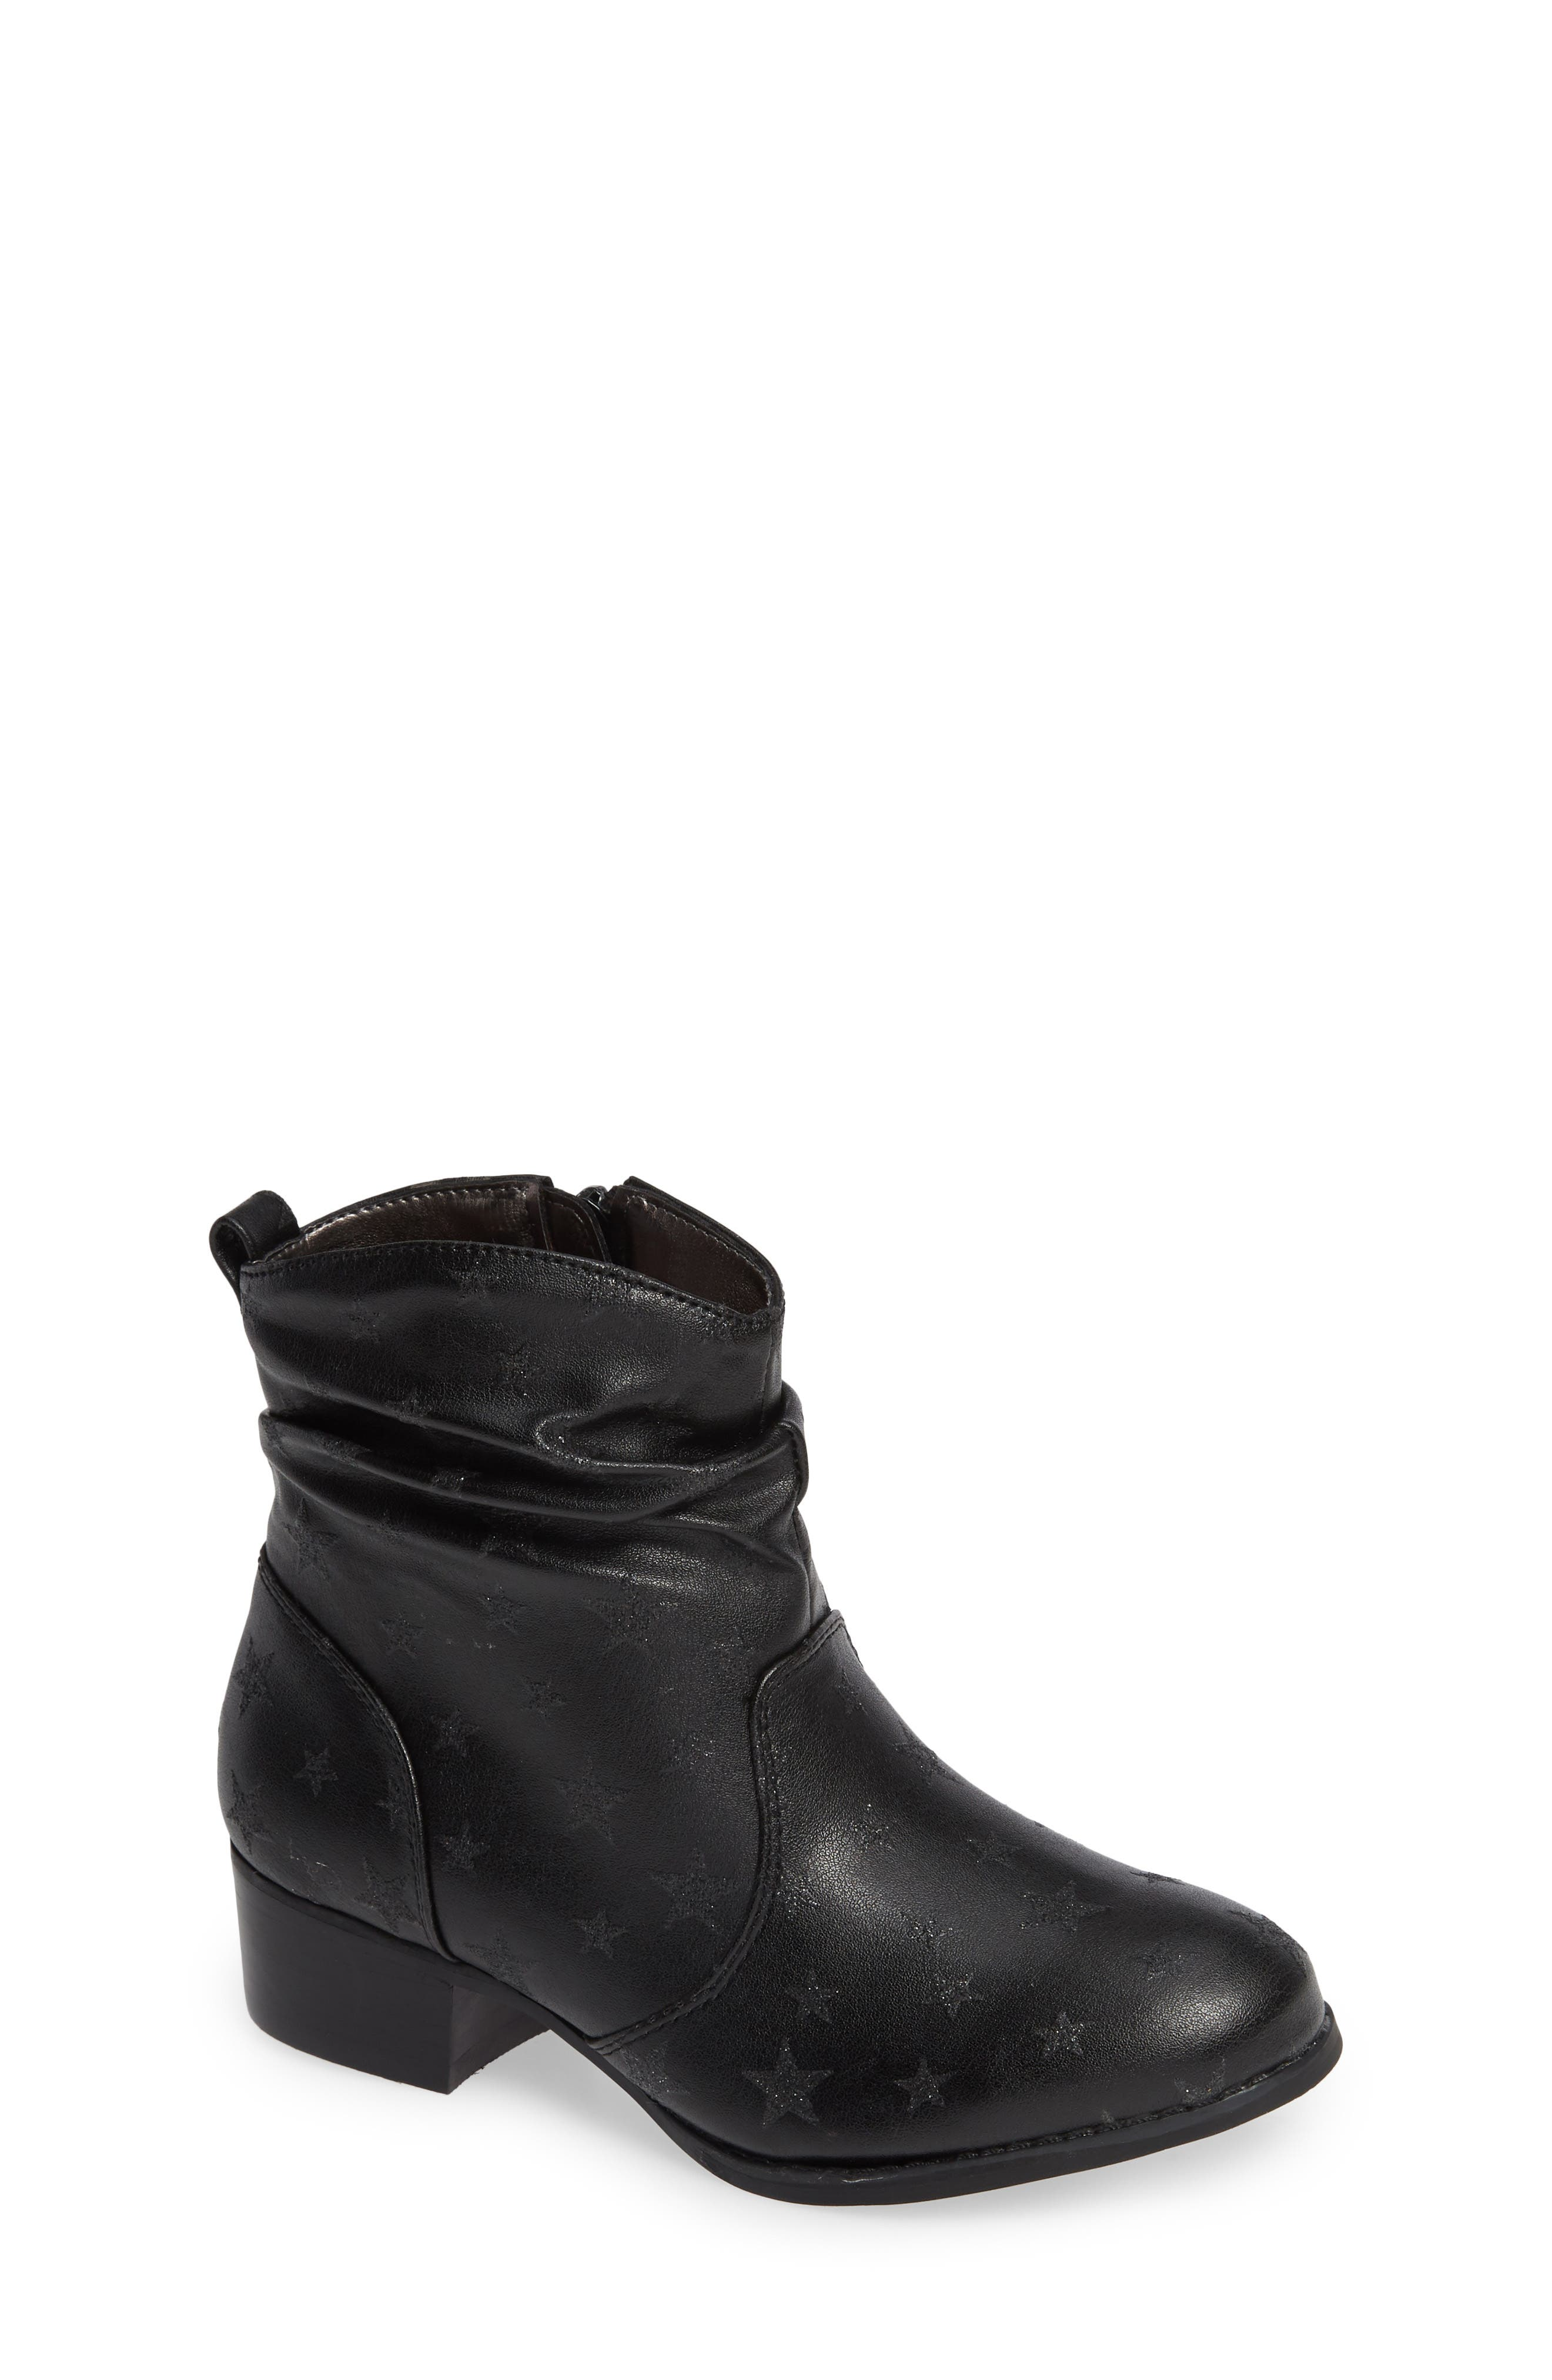 JCountry Slouch Bootie,                         Main,                         color, BLACK